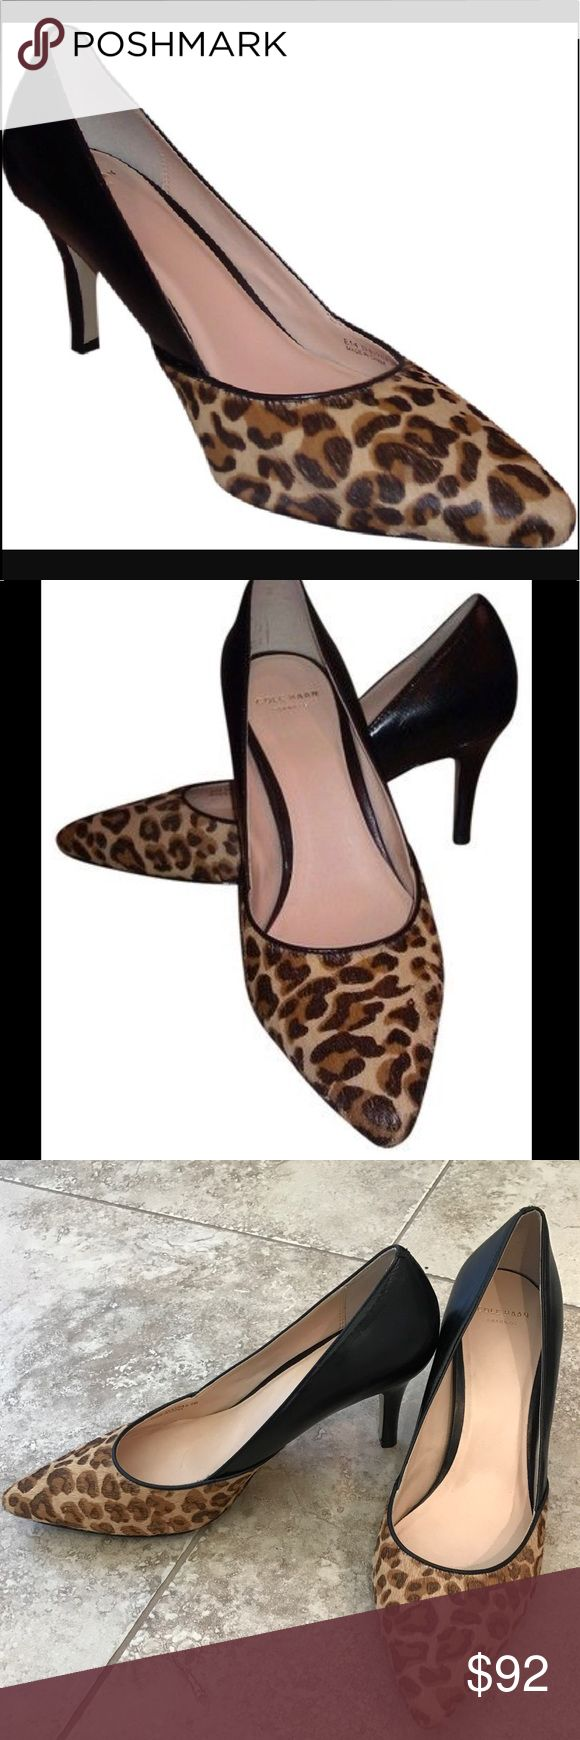 NWOT Cole Haan leopard print heels Cole Haan heels in printed calf hair/leather, mark from sale sticker to bottom of shoes (see pic) never worn. No box included. Stickers intact, but no tags. First two pics stock photos, rest of item for sale Cole Haan Shoes Heels